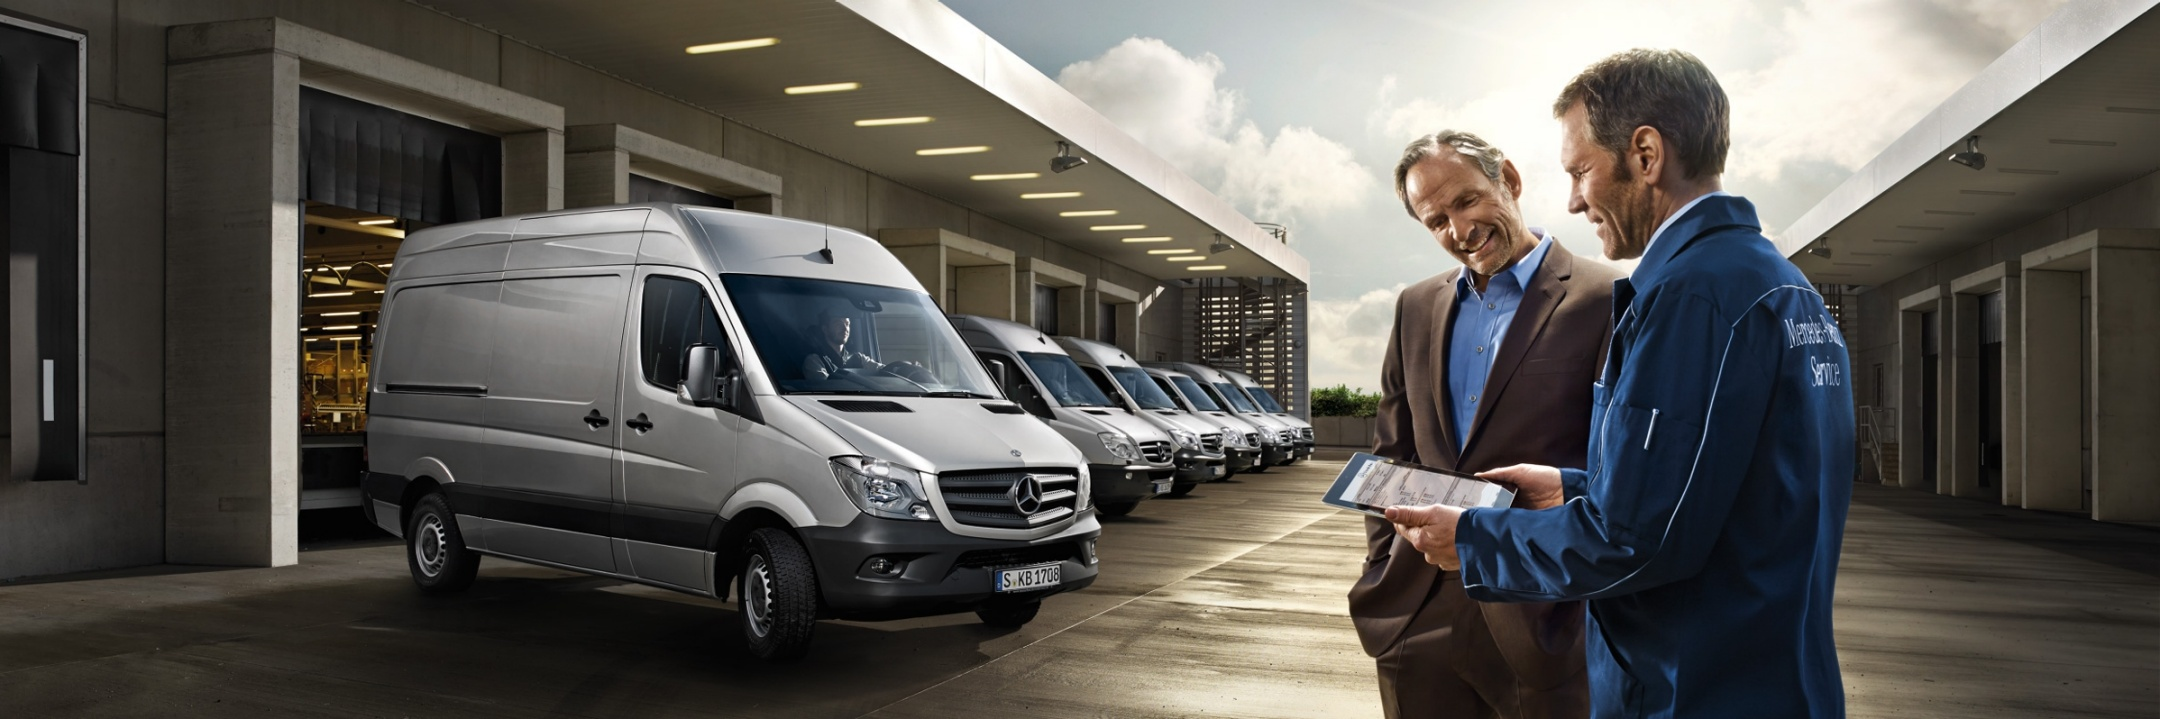 Mercedes-Benz, aftersales services